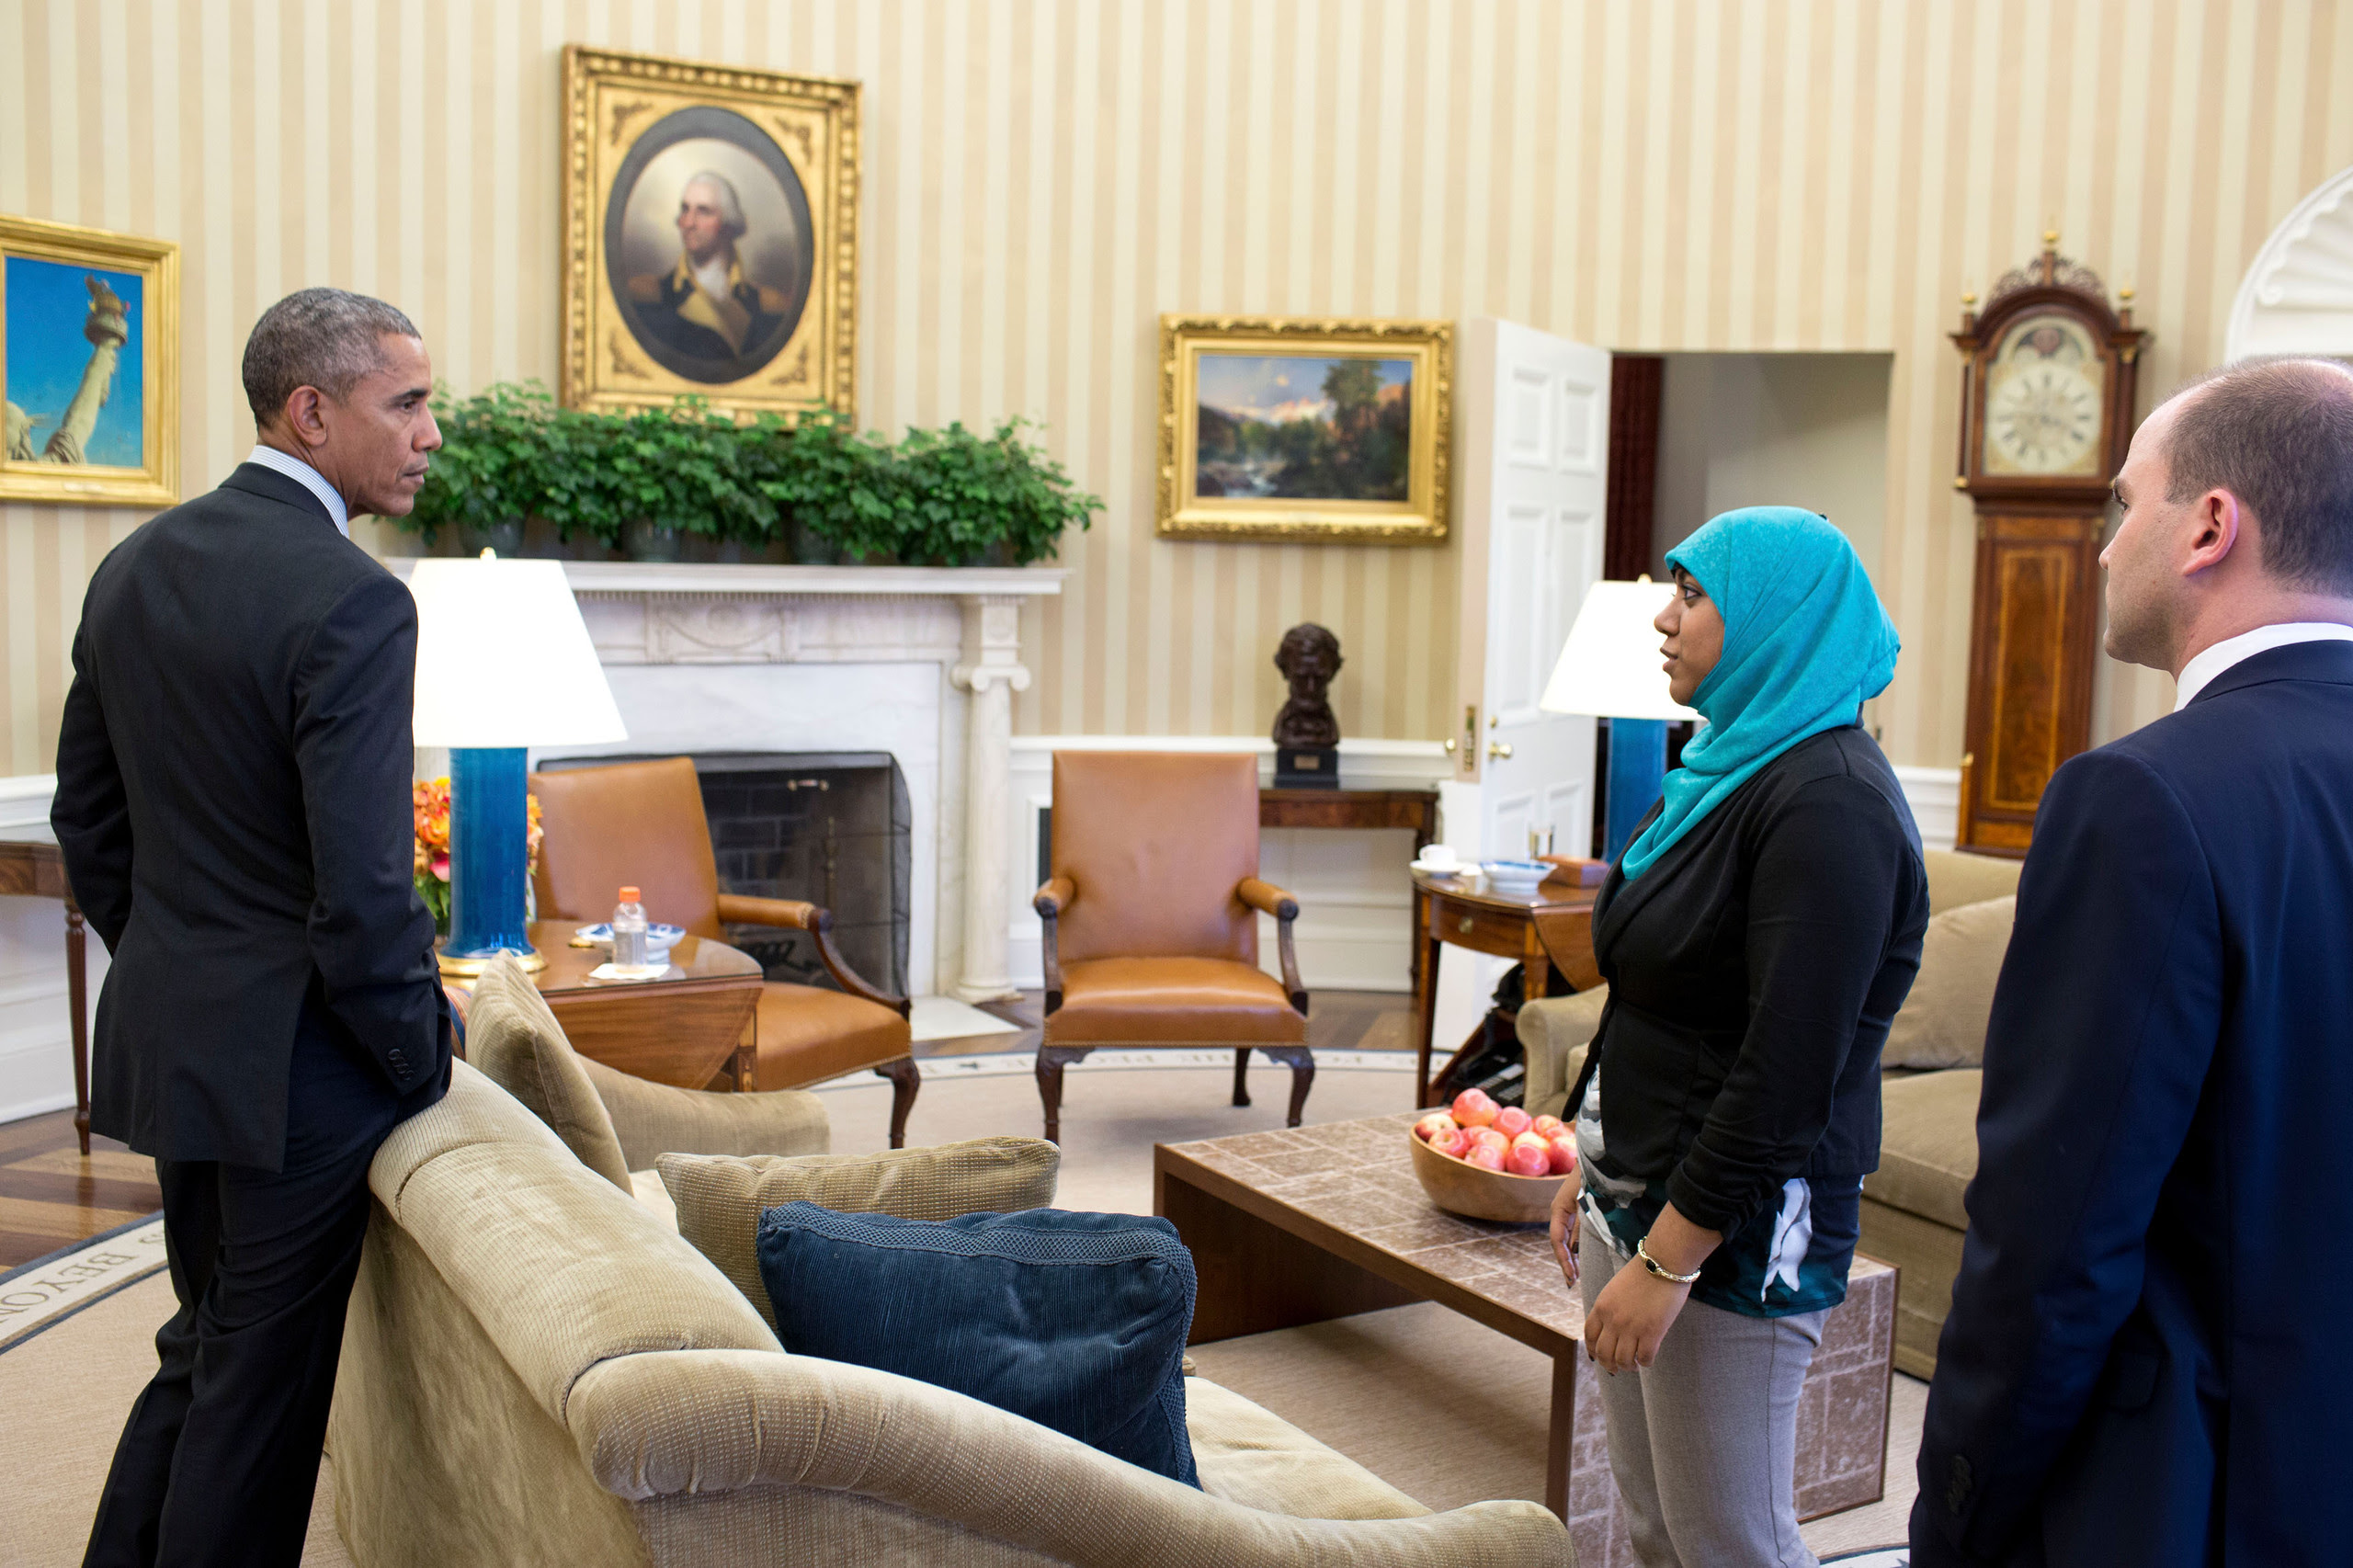 President Barack Obama holds American Muslim leaders meeting prep in the Oval Office, Feb. 4, 2015. Participants are:  Ben Rhodes, Deputy National Security Advisor for Strategic Communications and Rumana Ahmed, Advisor to the Deputy National Security Advisor, NSC. (Official White House Photo by Pete Souza)  This photograph is provided by THE WHITE HOUSE as a courtesy and may be printed by the subject(s) in the photograph for personal use only. The photograph may not be manipulated in any way and may not otherwise be reproduced, disseminated or broadcast, without the written permission of the White House Photo Office. This photograph may not be used in any commercial or political materials, advertisements, emails, products, promotions that in any way suggests approval or endorsement of the President, the First Family, or the White House.Consistent with these restrictions, a commercial printer may produce print(s) of the photograph for the subject(s) personal use.